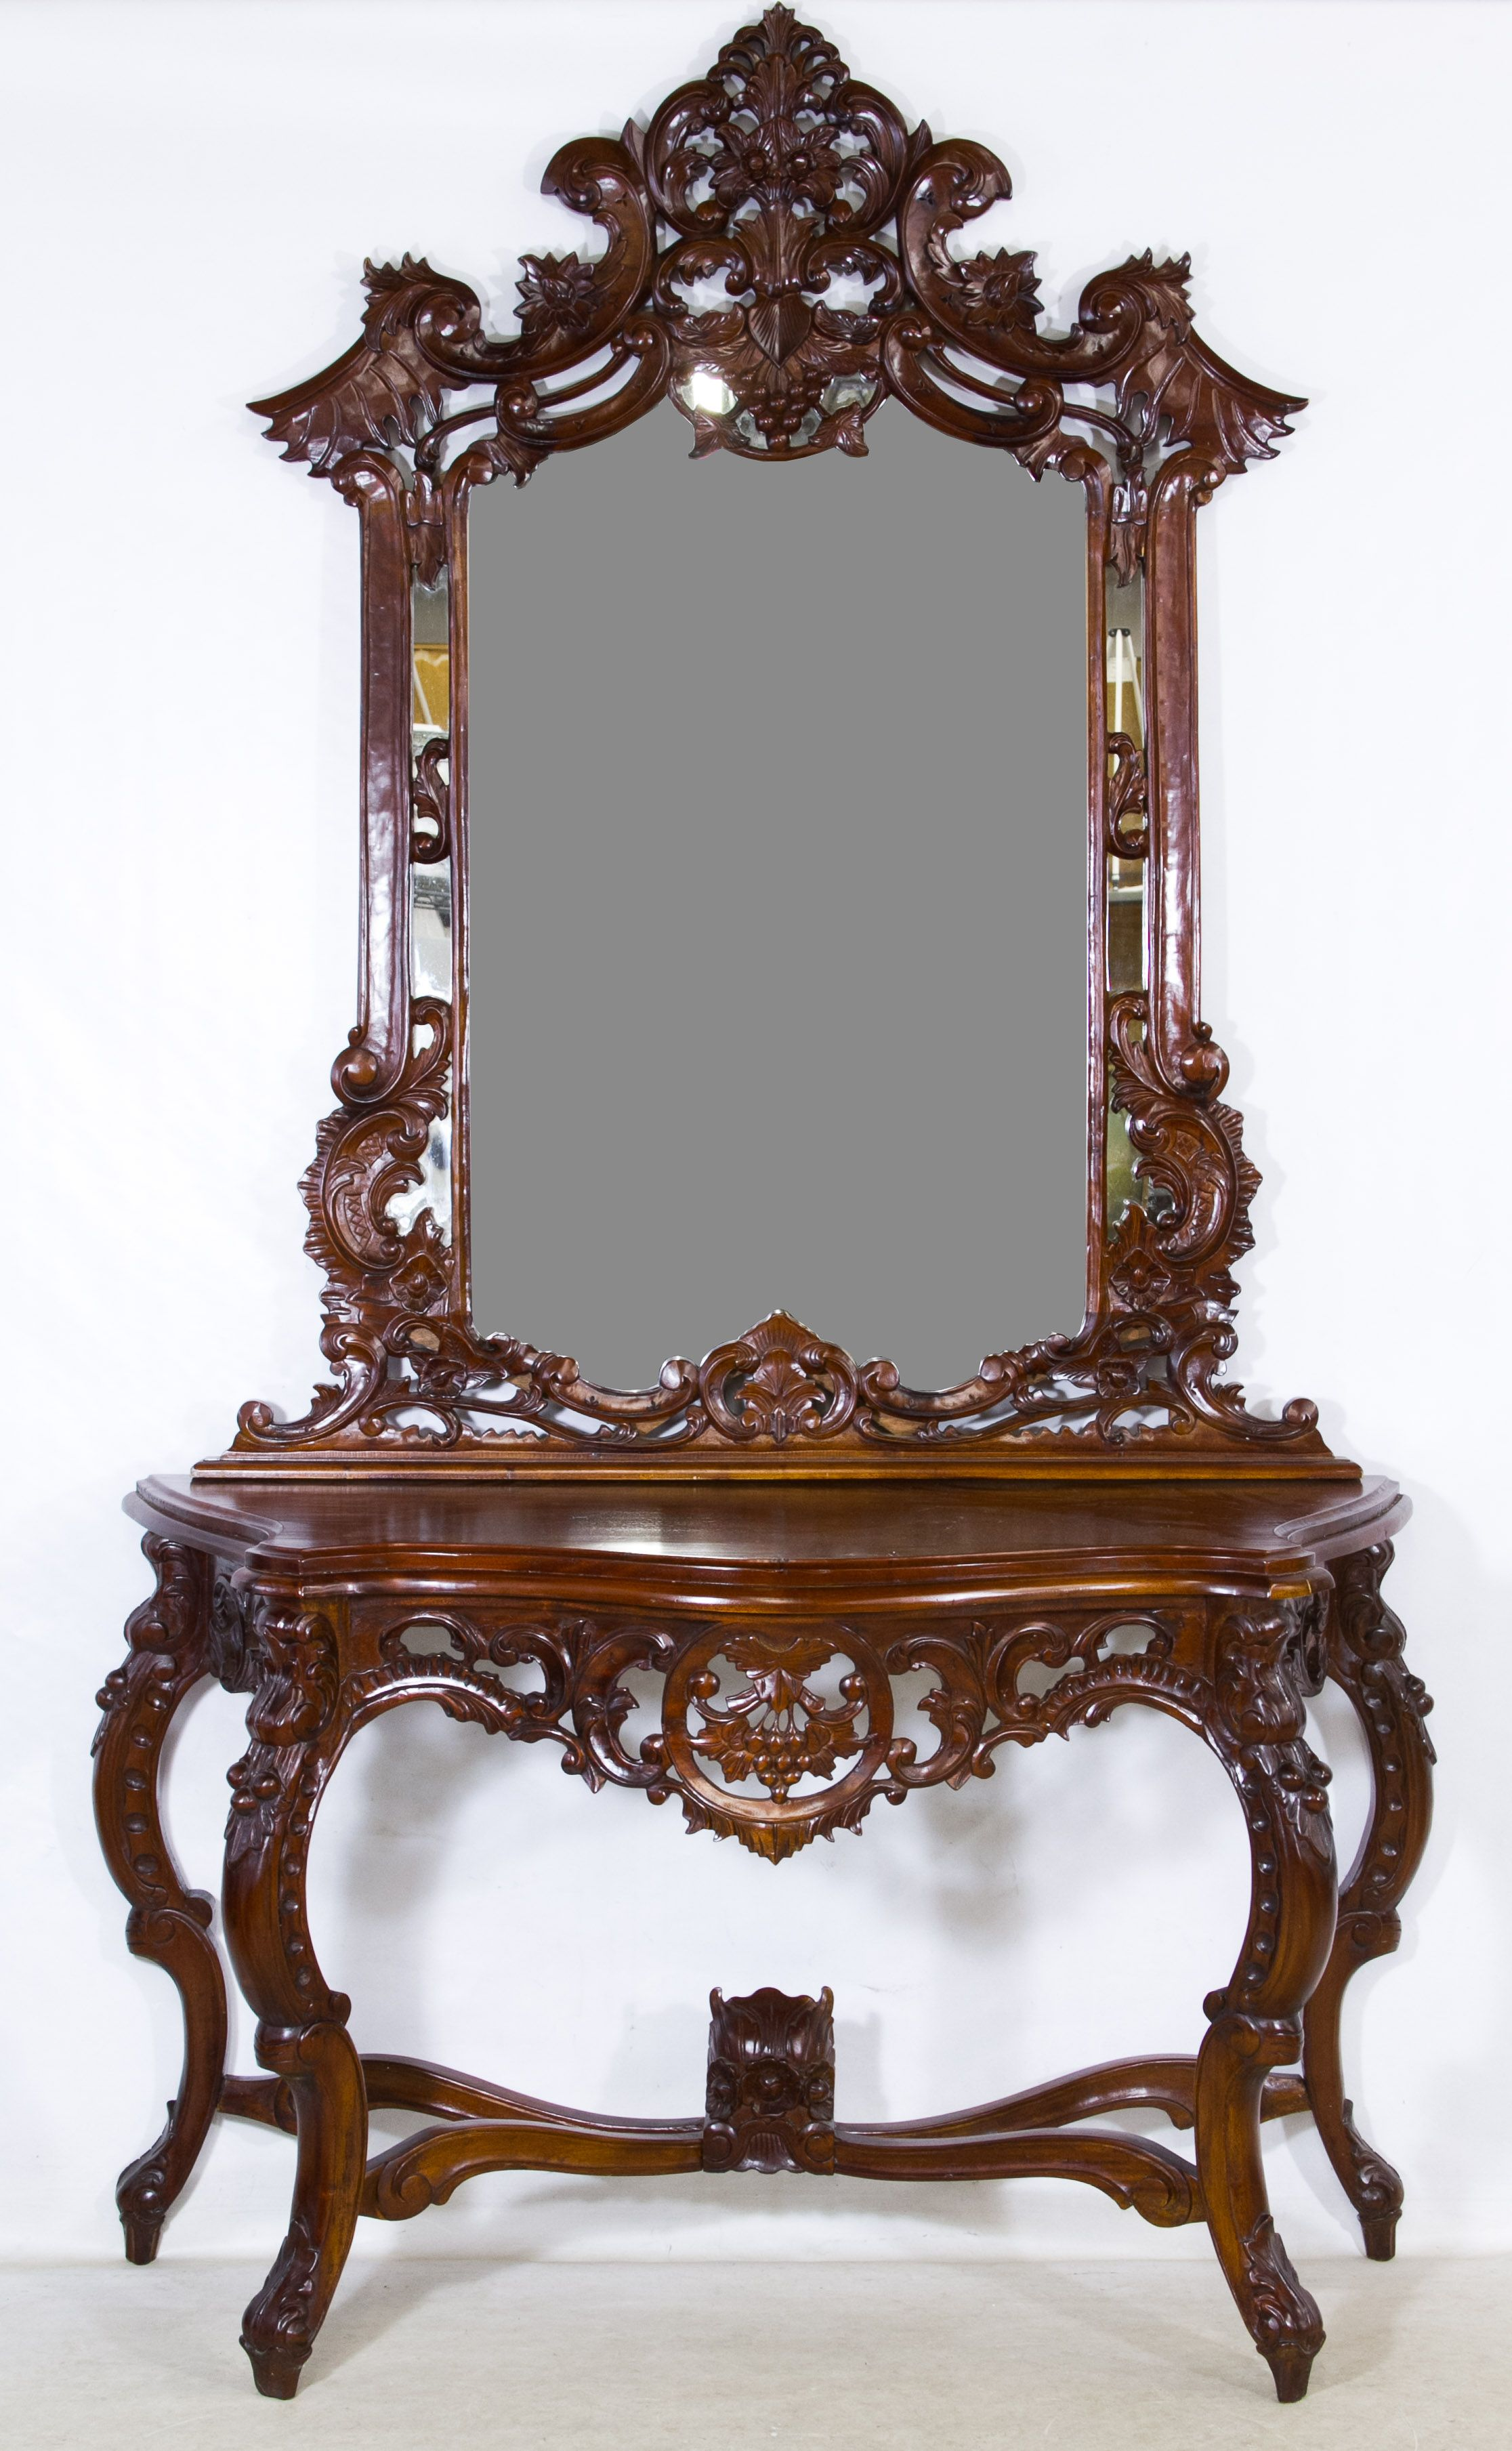 Lot Mahogany Foyer Table and Mirror; Indonesia, highly carved wood frame mirror  on table with carved serpentine legs